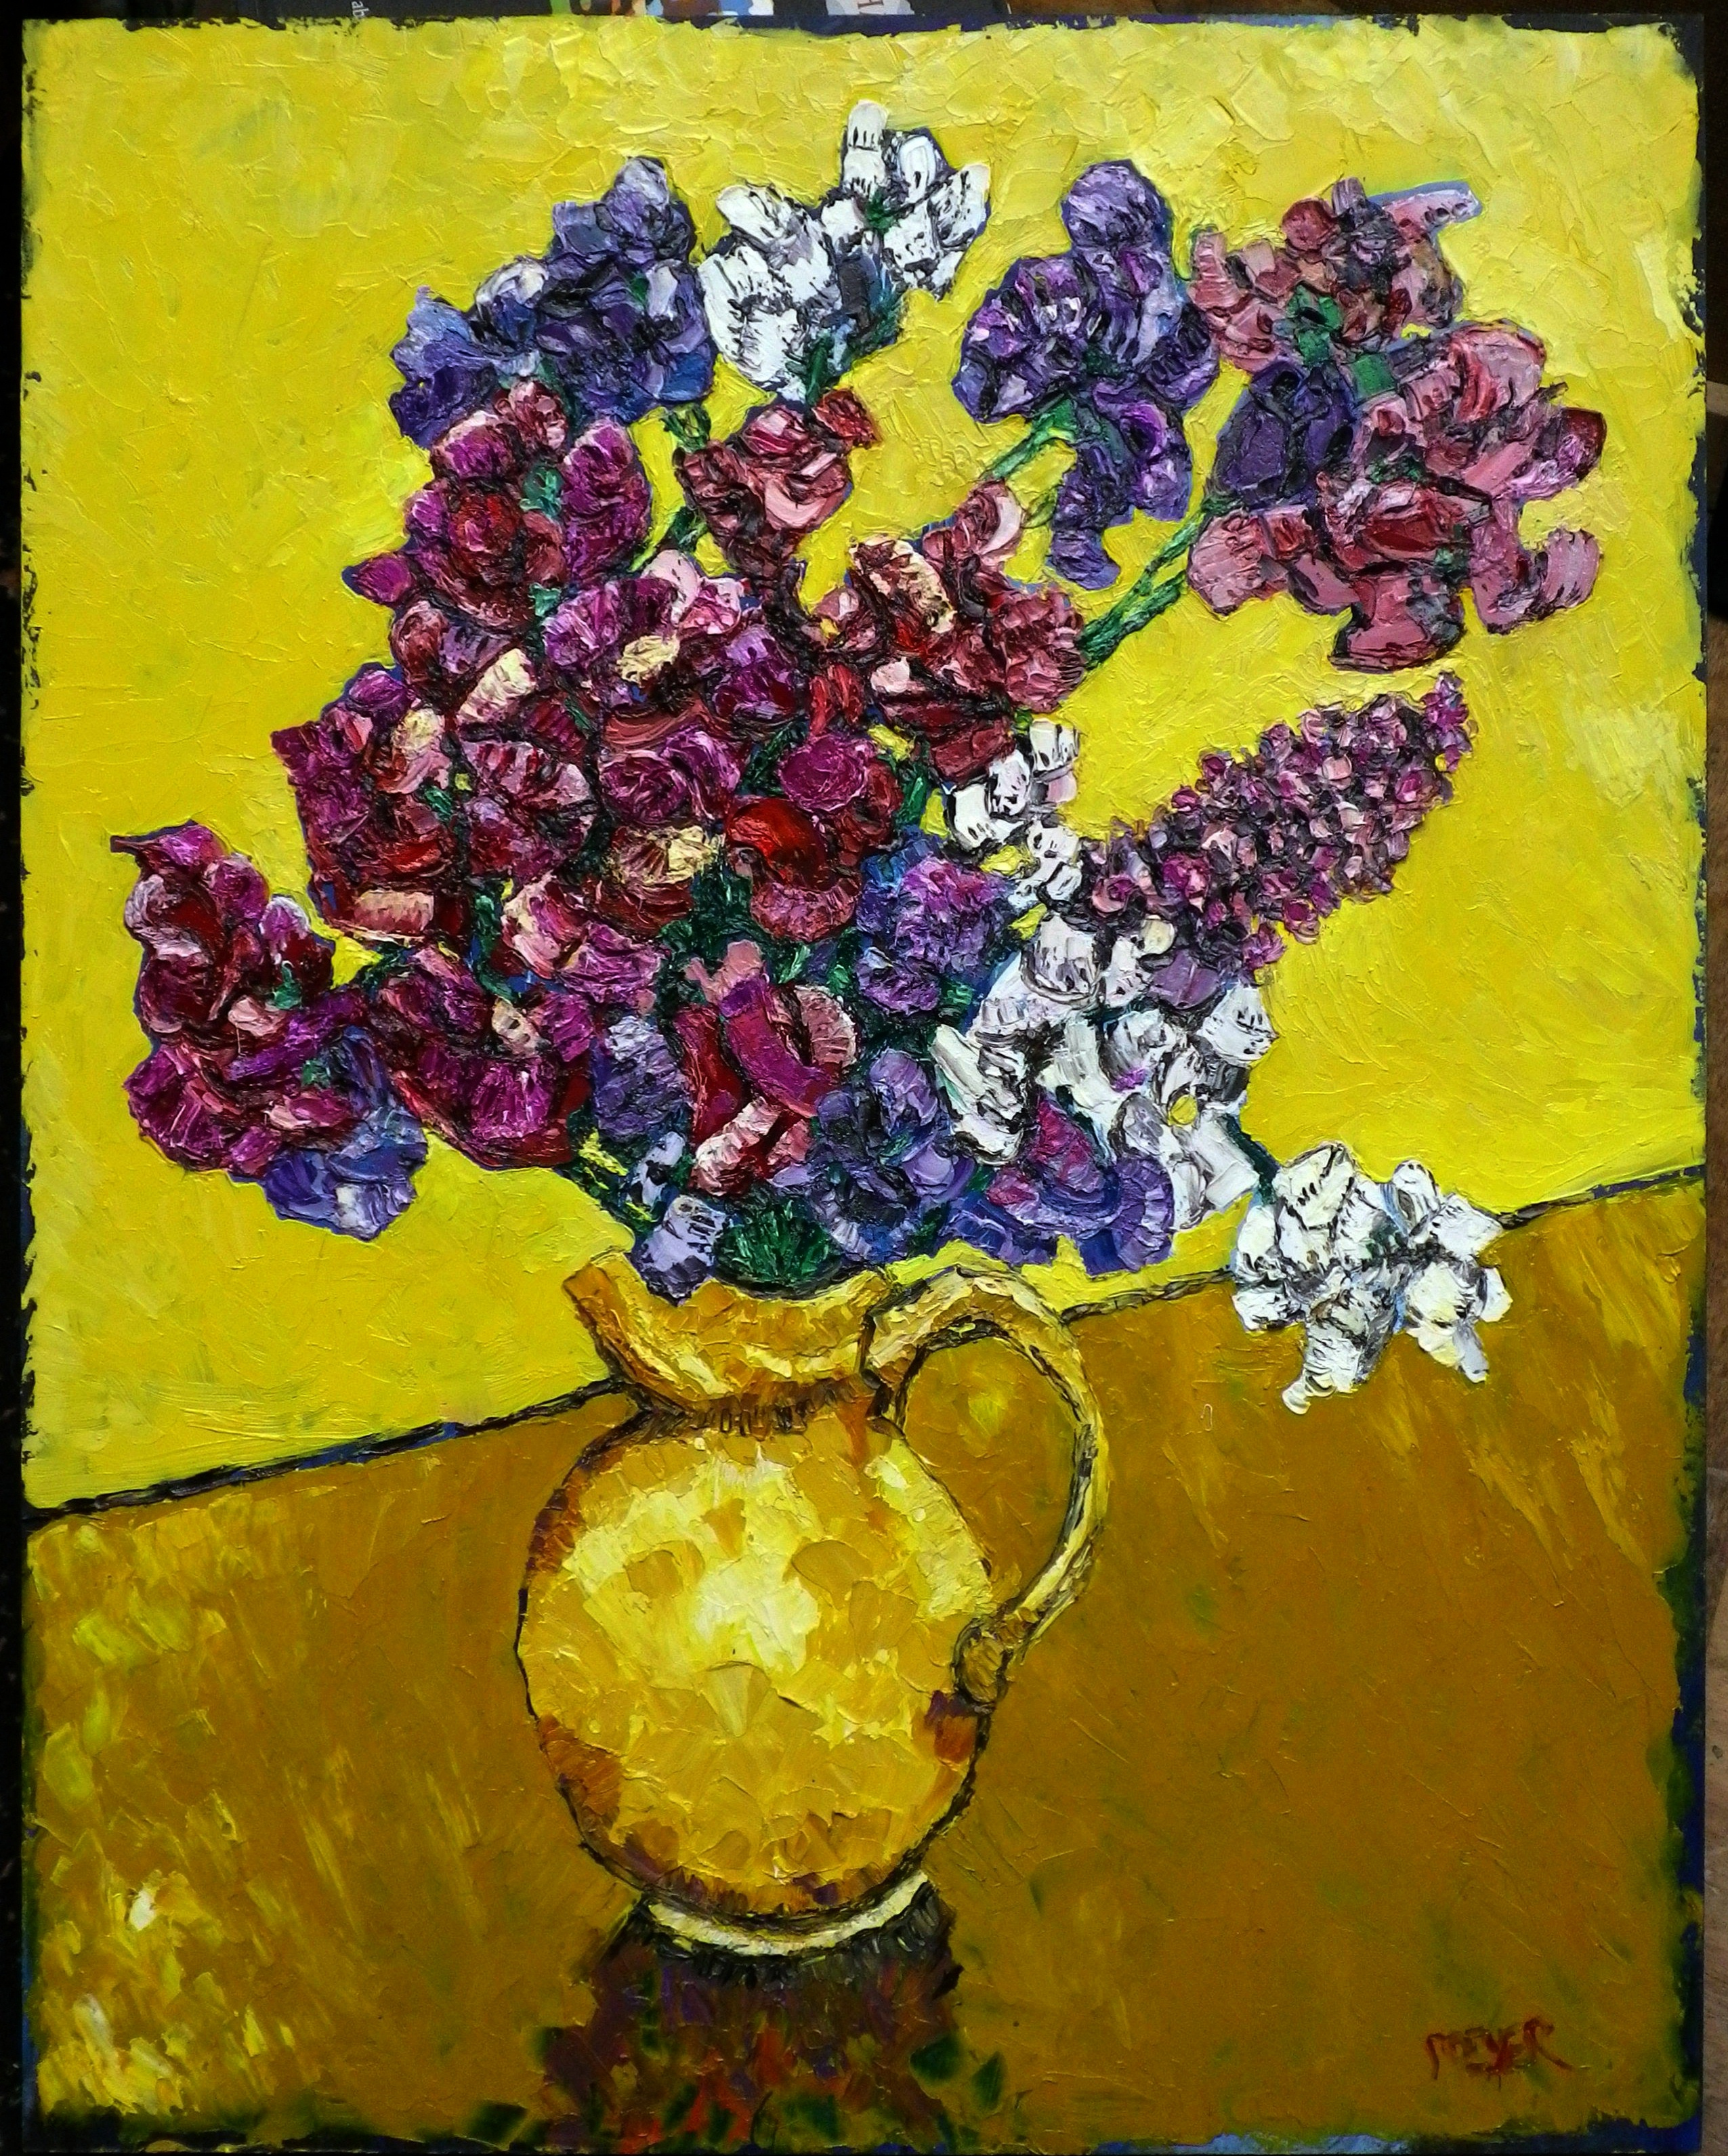 Sweetpeas with a buddleia spray in a yellow jug.